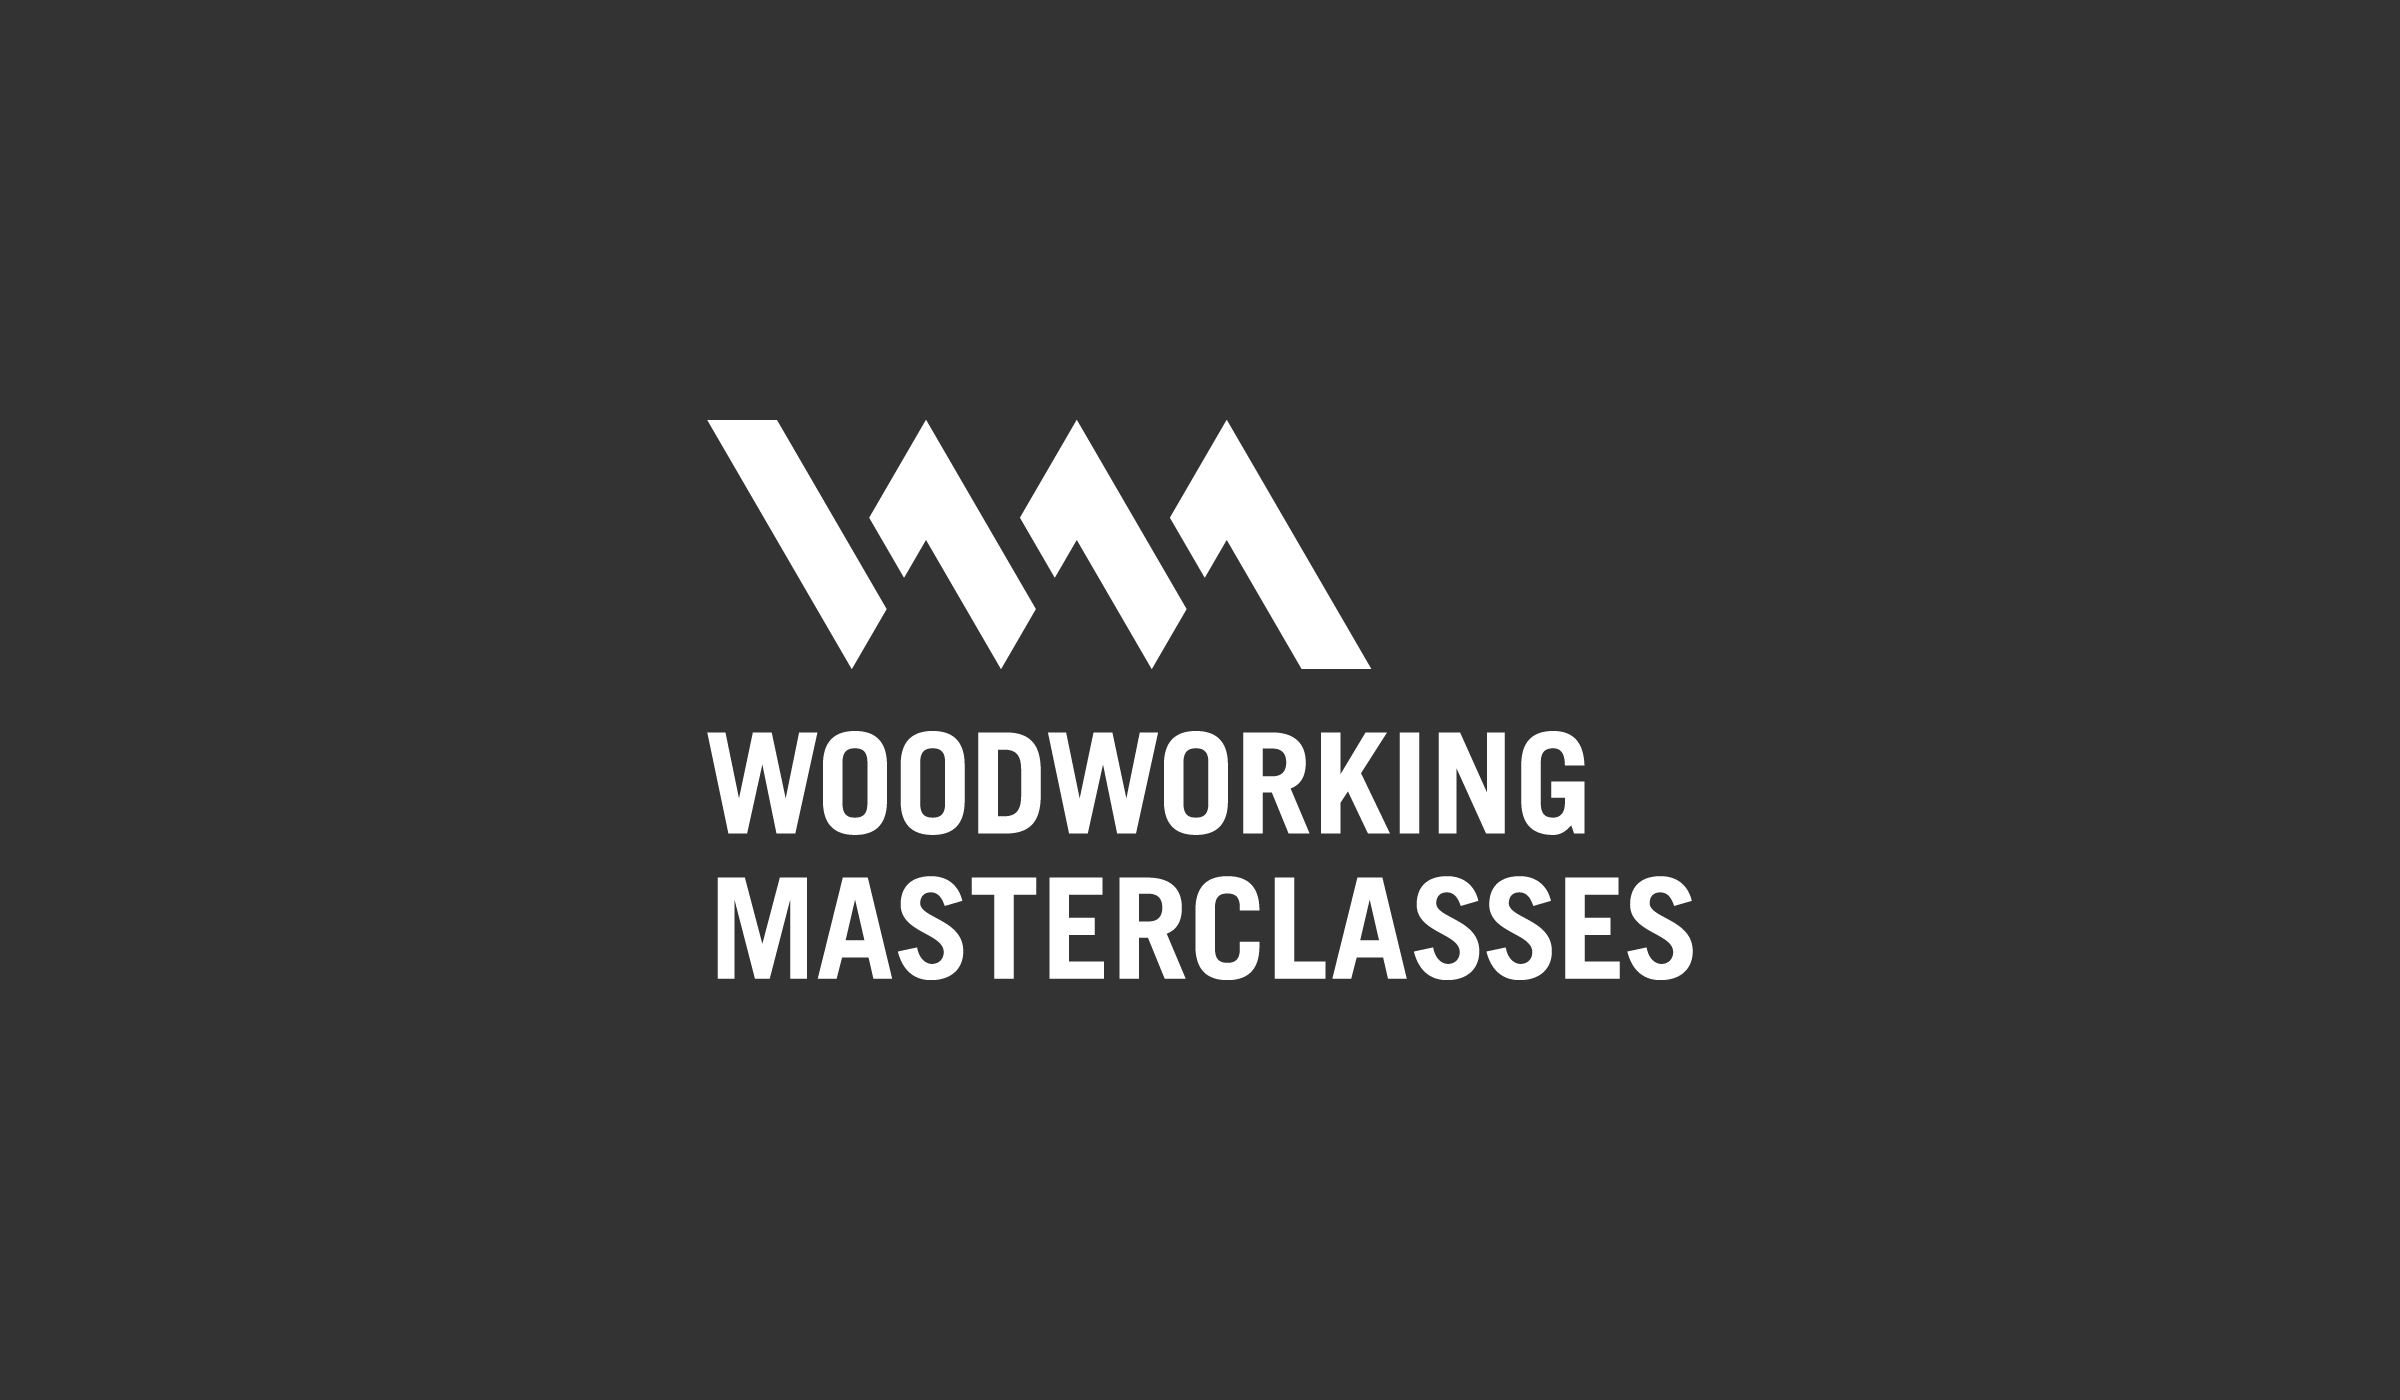 Woodworking Masterclasses logo